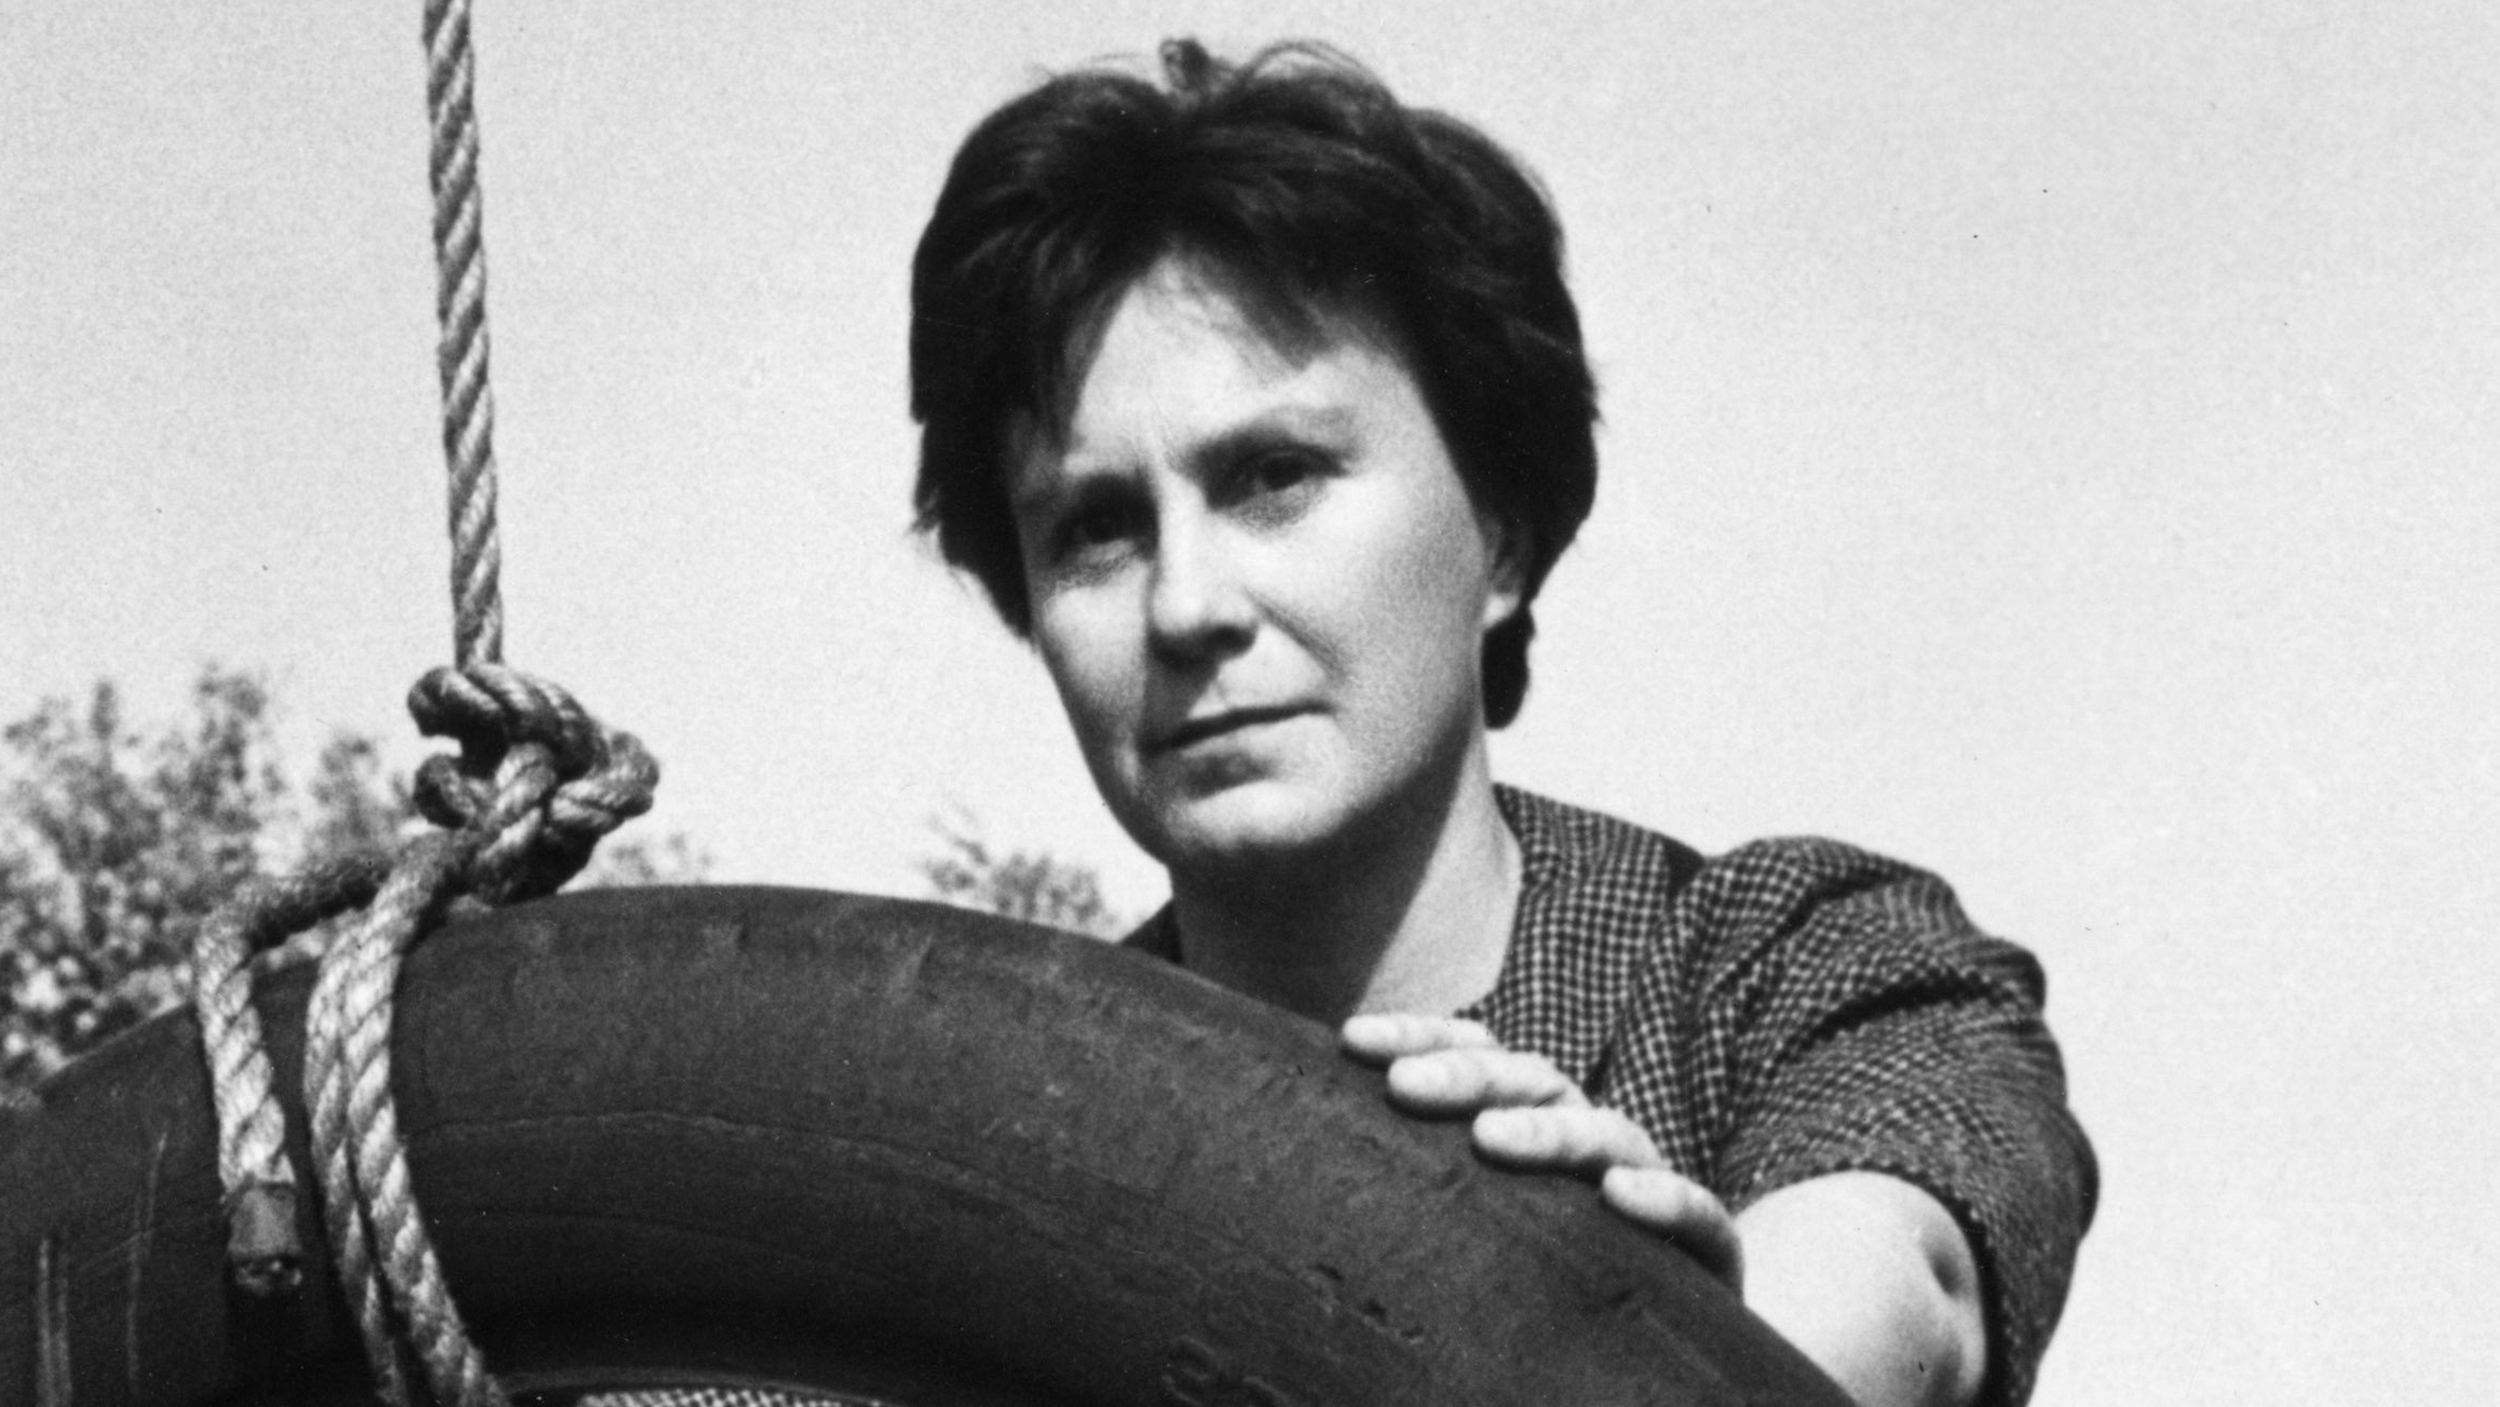 the life of harper lee The inspiring true story of harper lee, the girl who grew up to write to kill a  mockingbird,  no truth without ruth: the life of ruth bader ginsburg book  image.